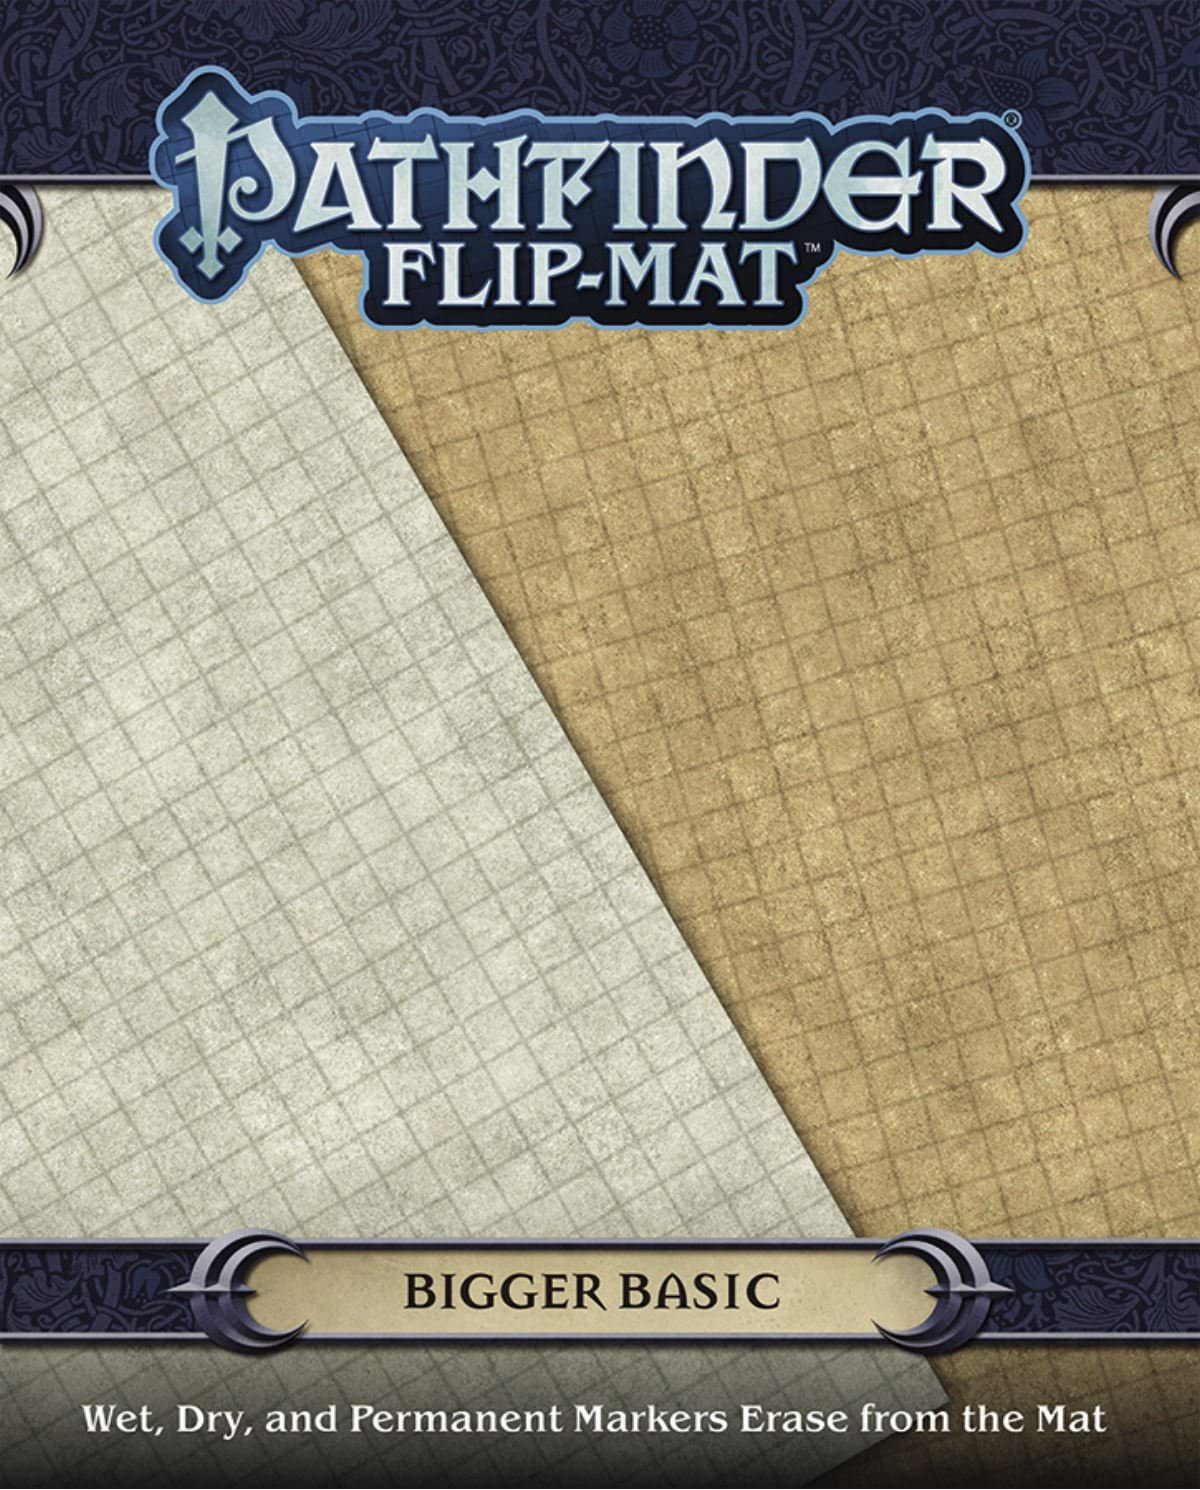 Pathfinder Flip-Mat: Bigger Basic